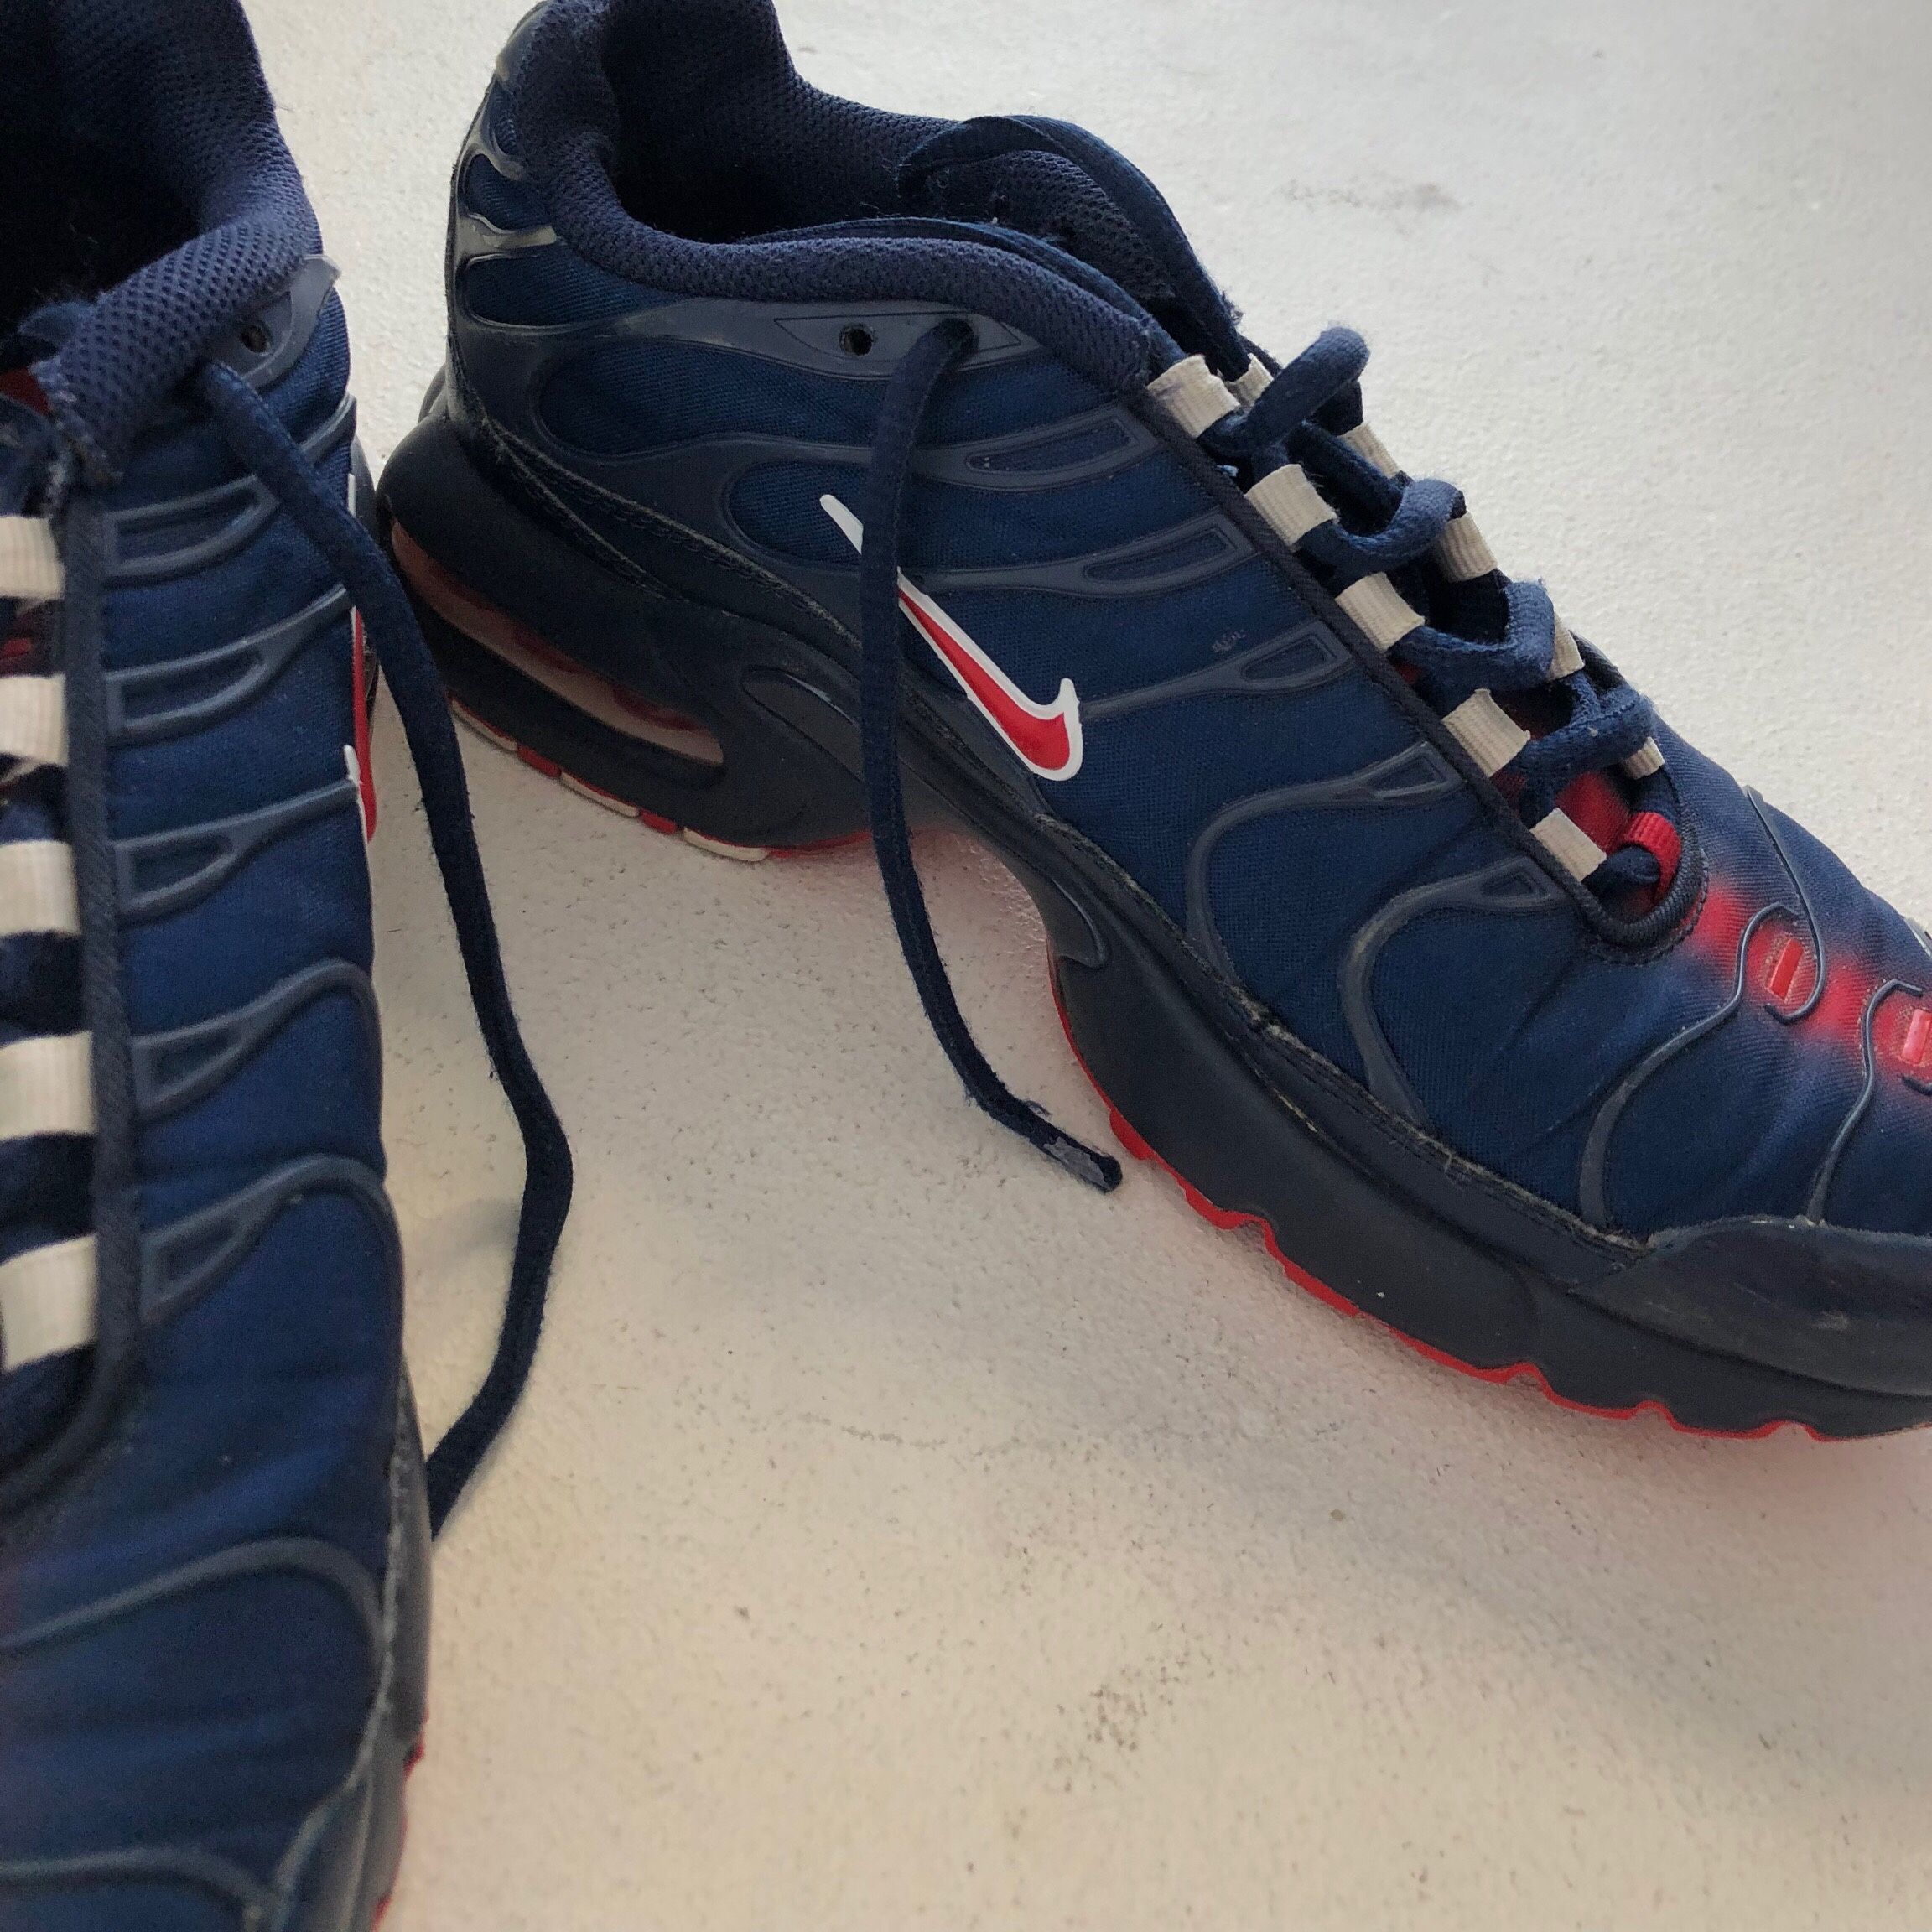 NIKE TNS in red and blue Size UK 5 90s